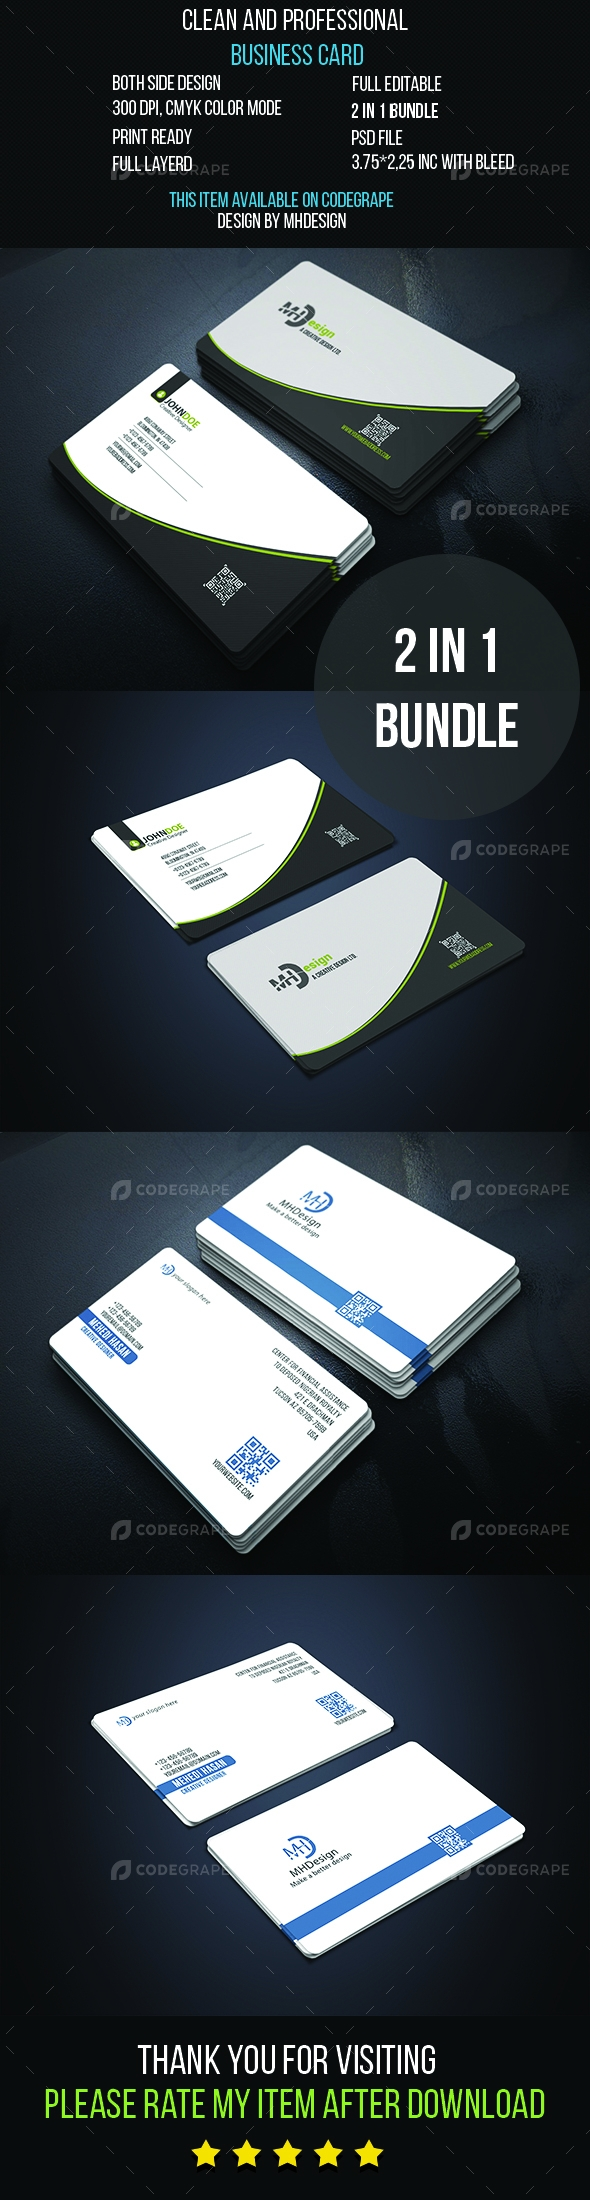 2 IN 1 Business Card